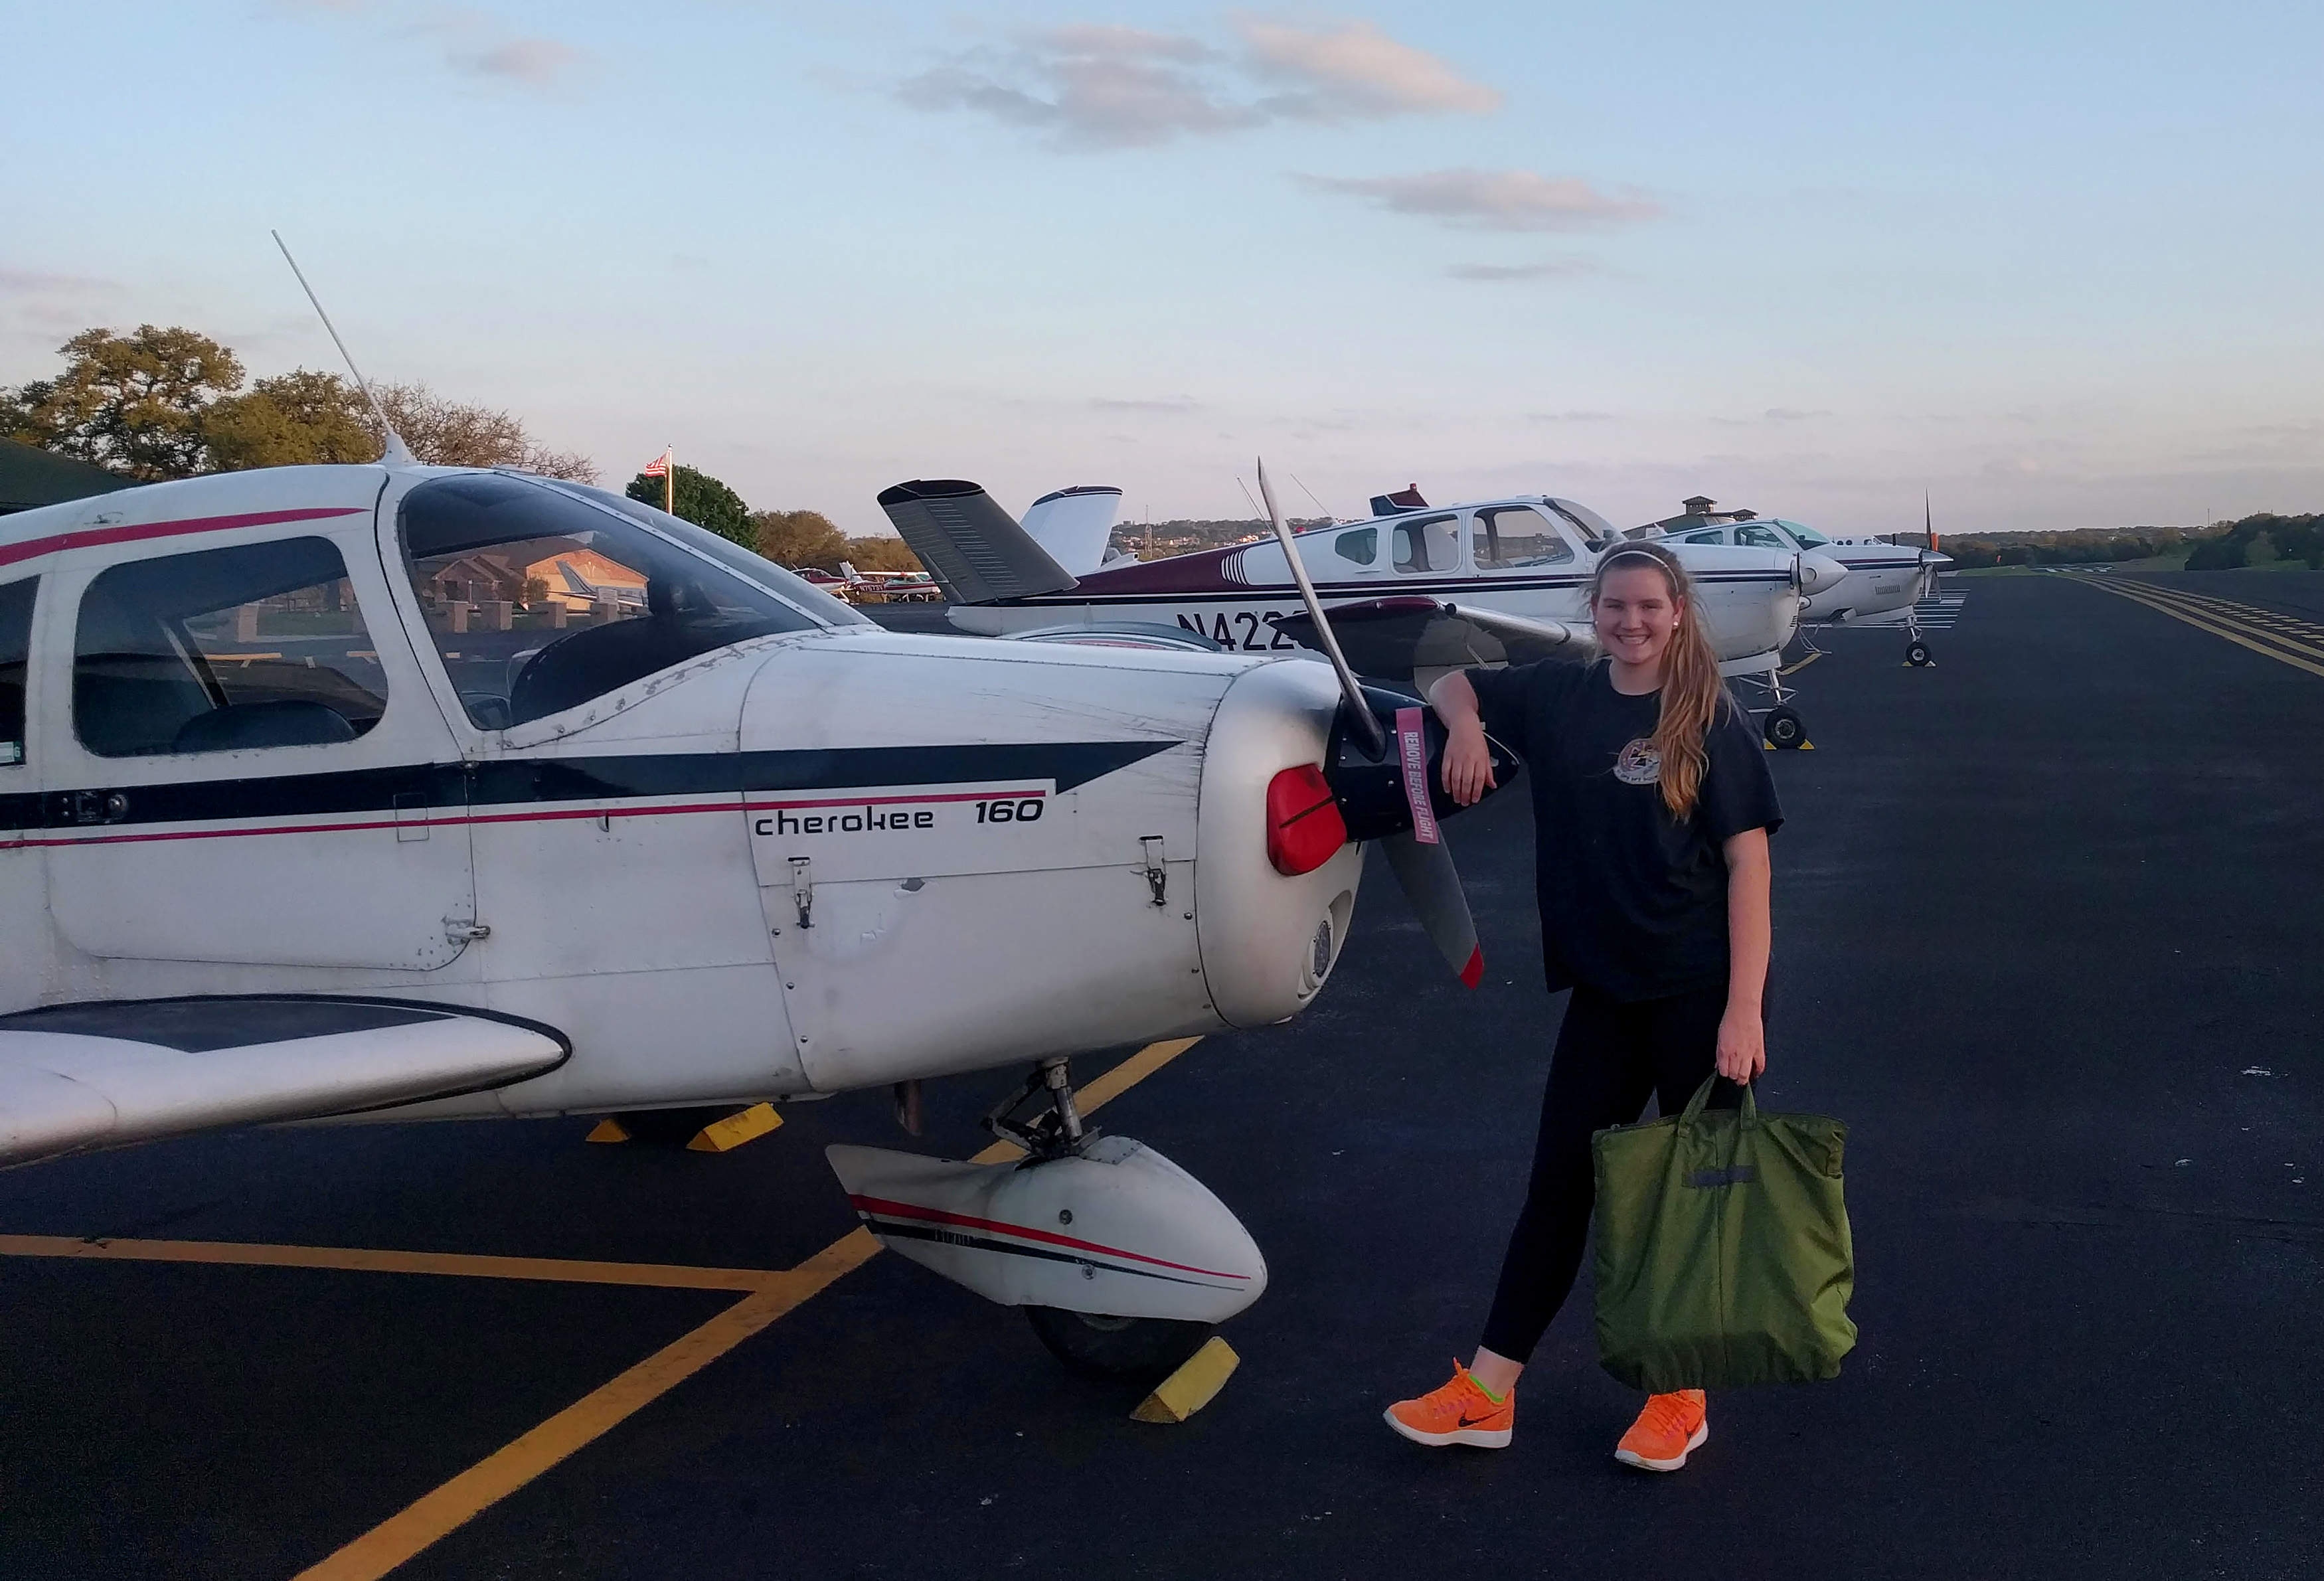 Student pilot Lauryn Spinetta with the Piper Cherokee PA-28 160 she is using for flight training. Photo courtesy of Lauryn Spinetta.